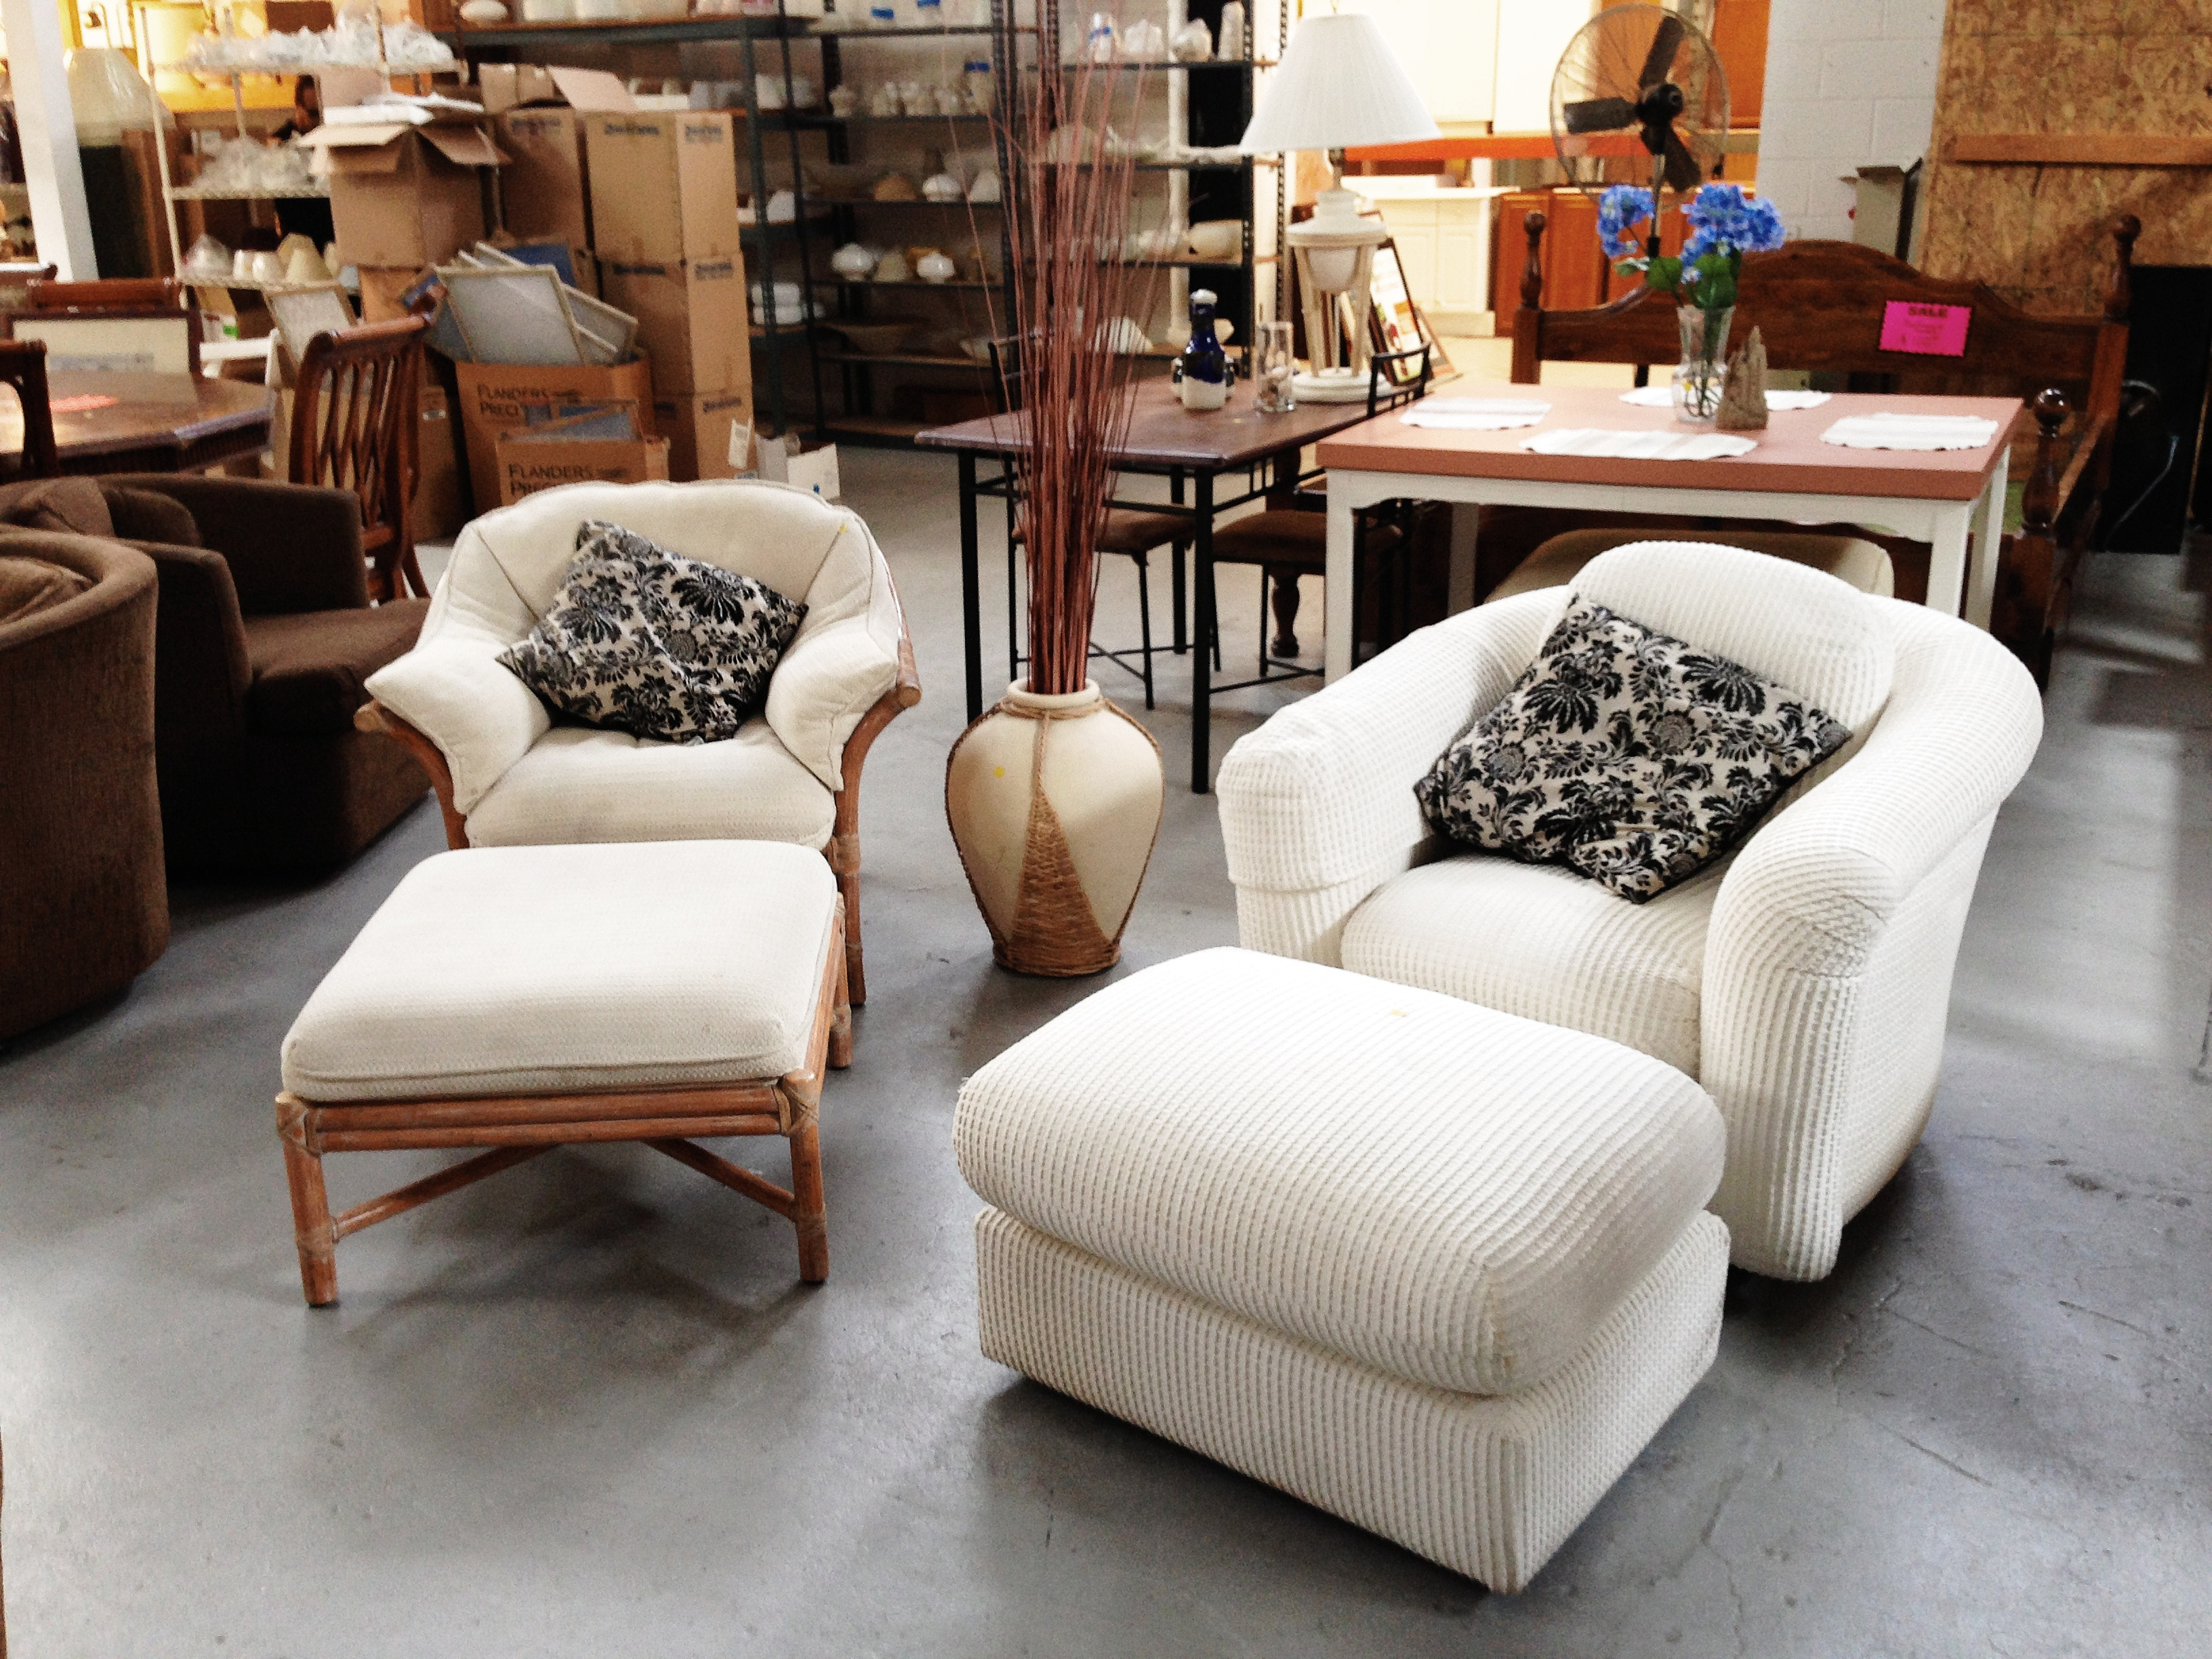 Donate To The Restore With Regard To Escondido Sofa Chairs (Photo 12 of 20)